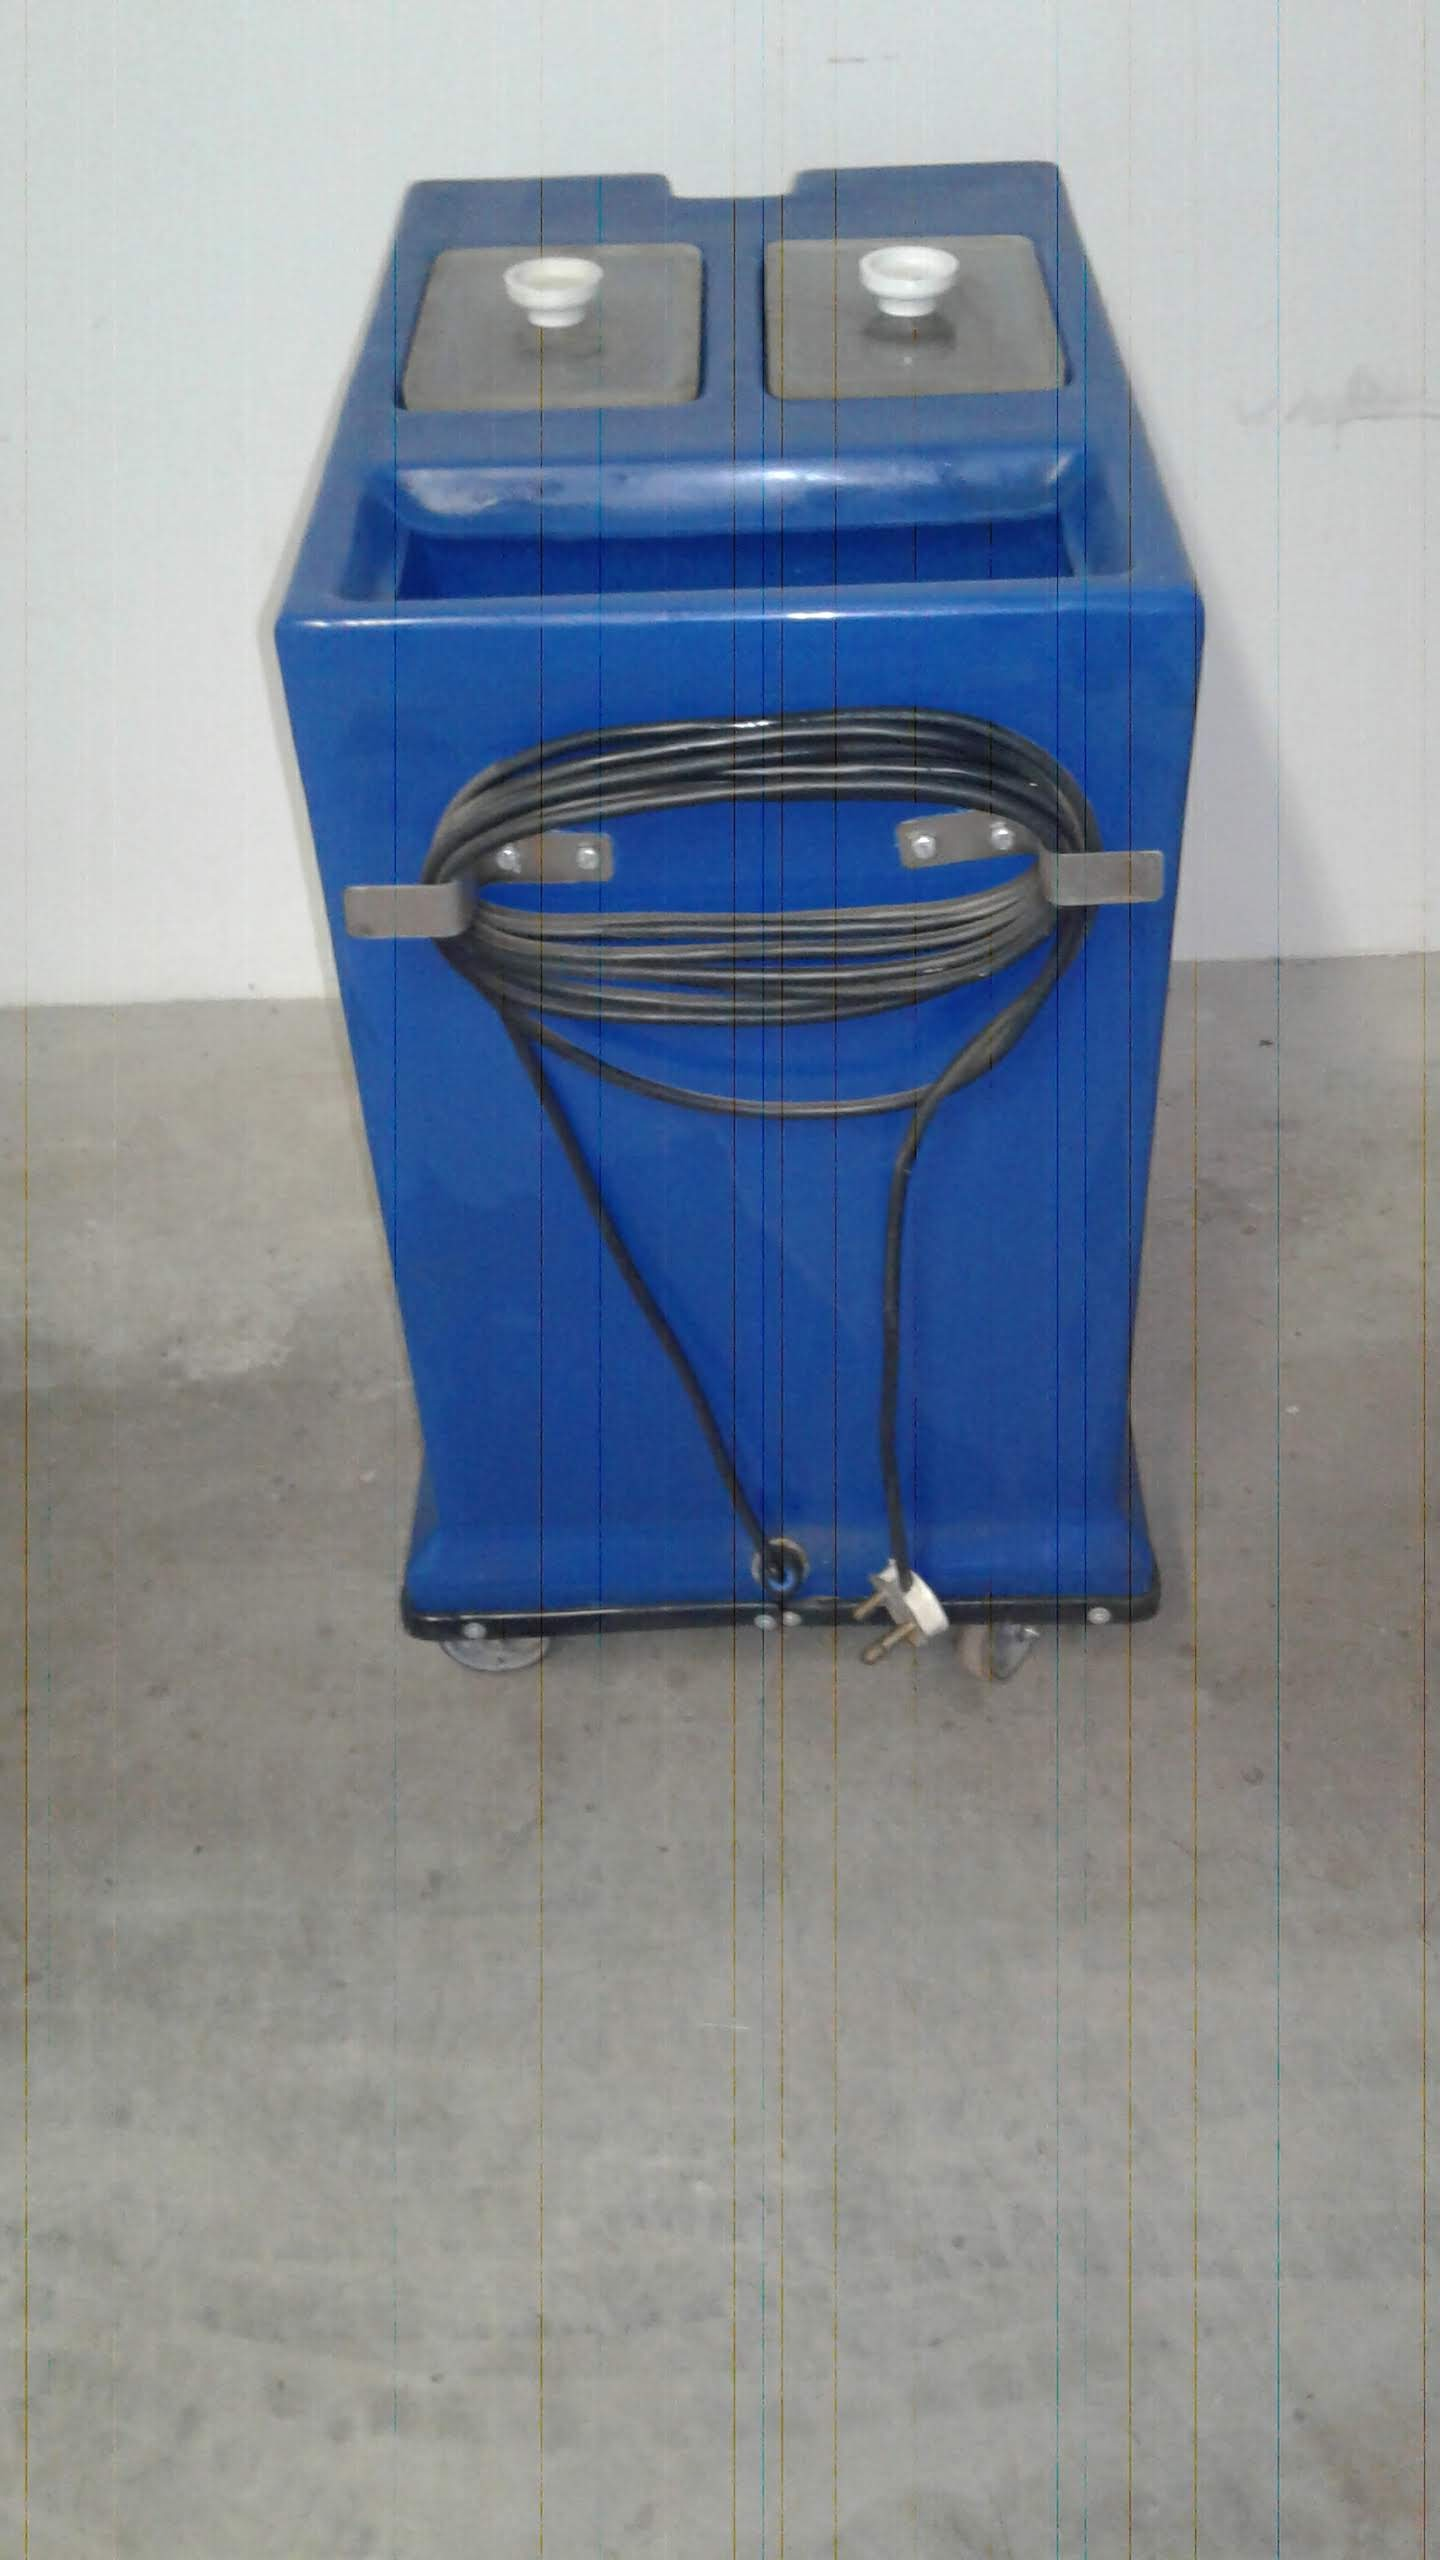 Carpet Cleaning Machine for HIRE